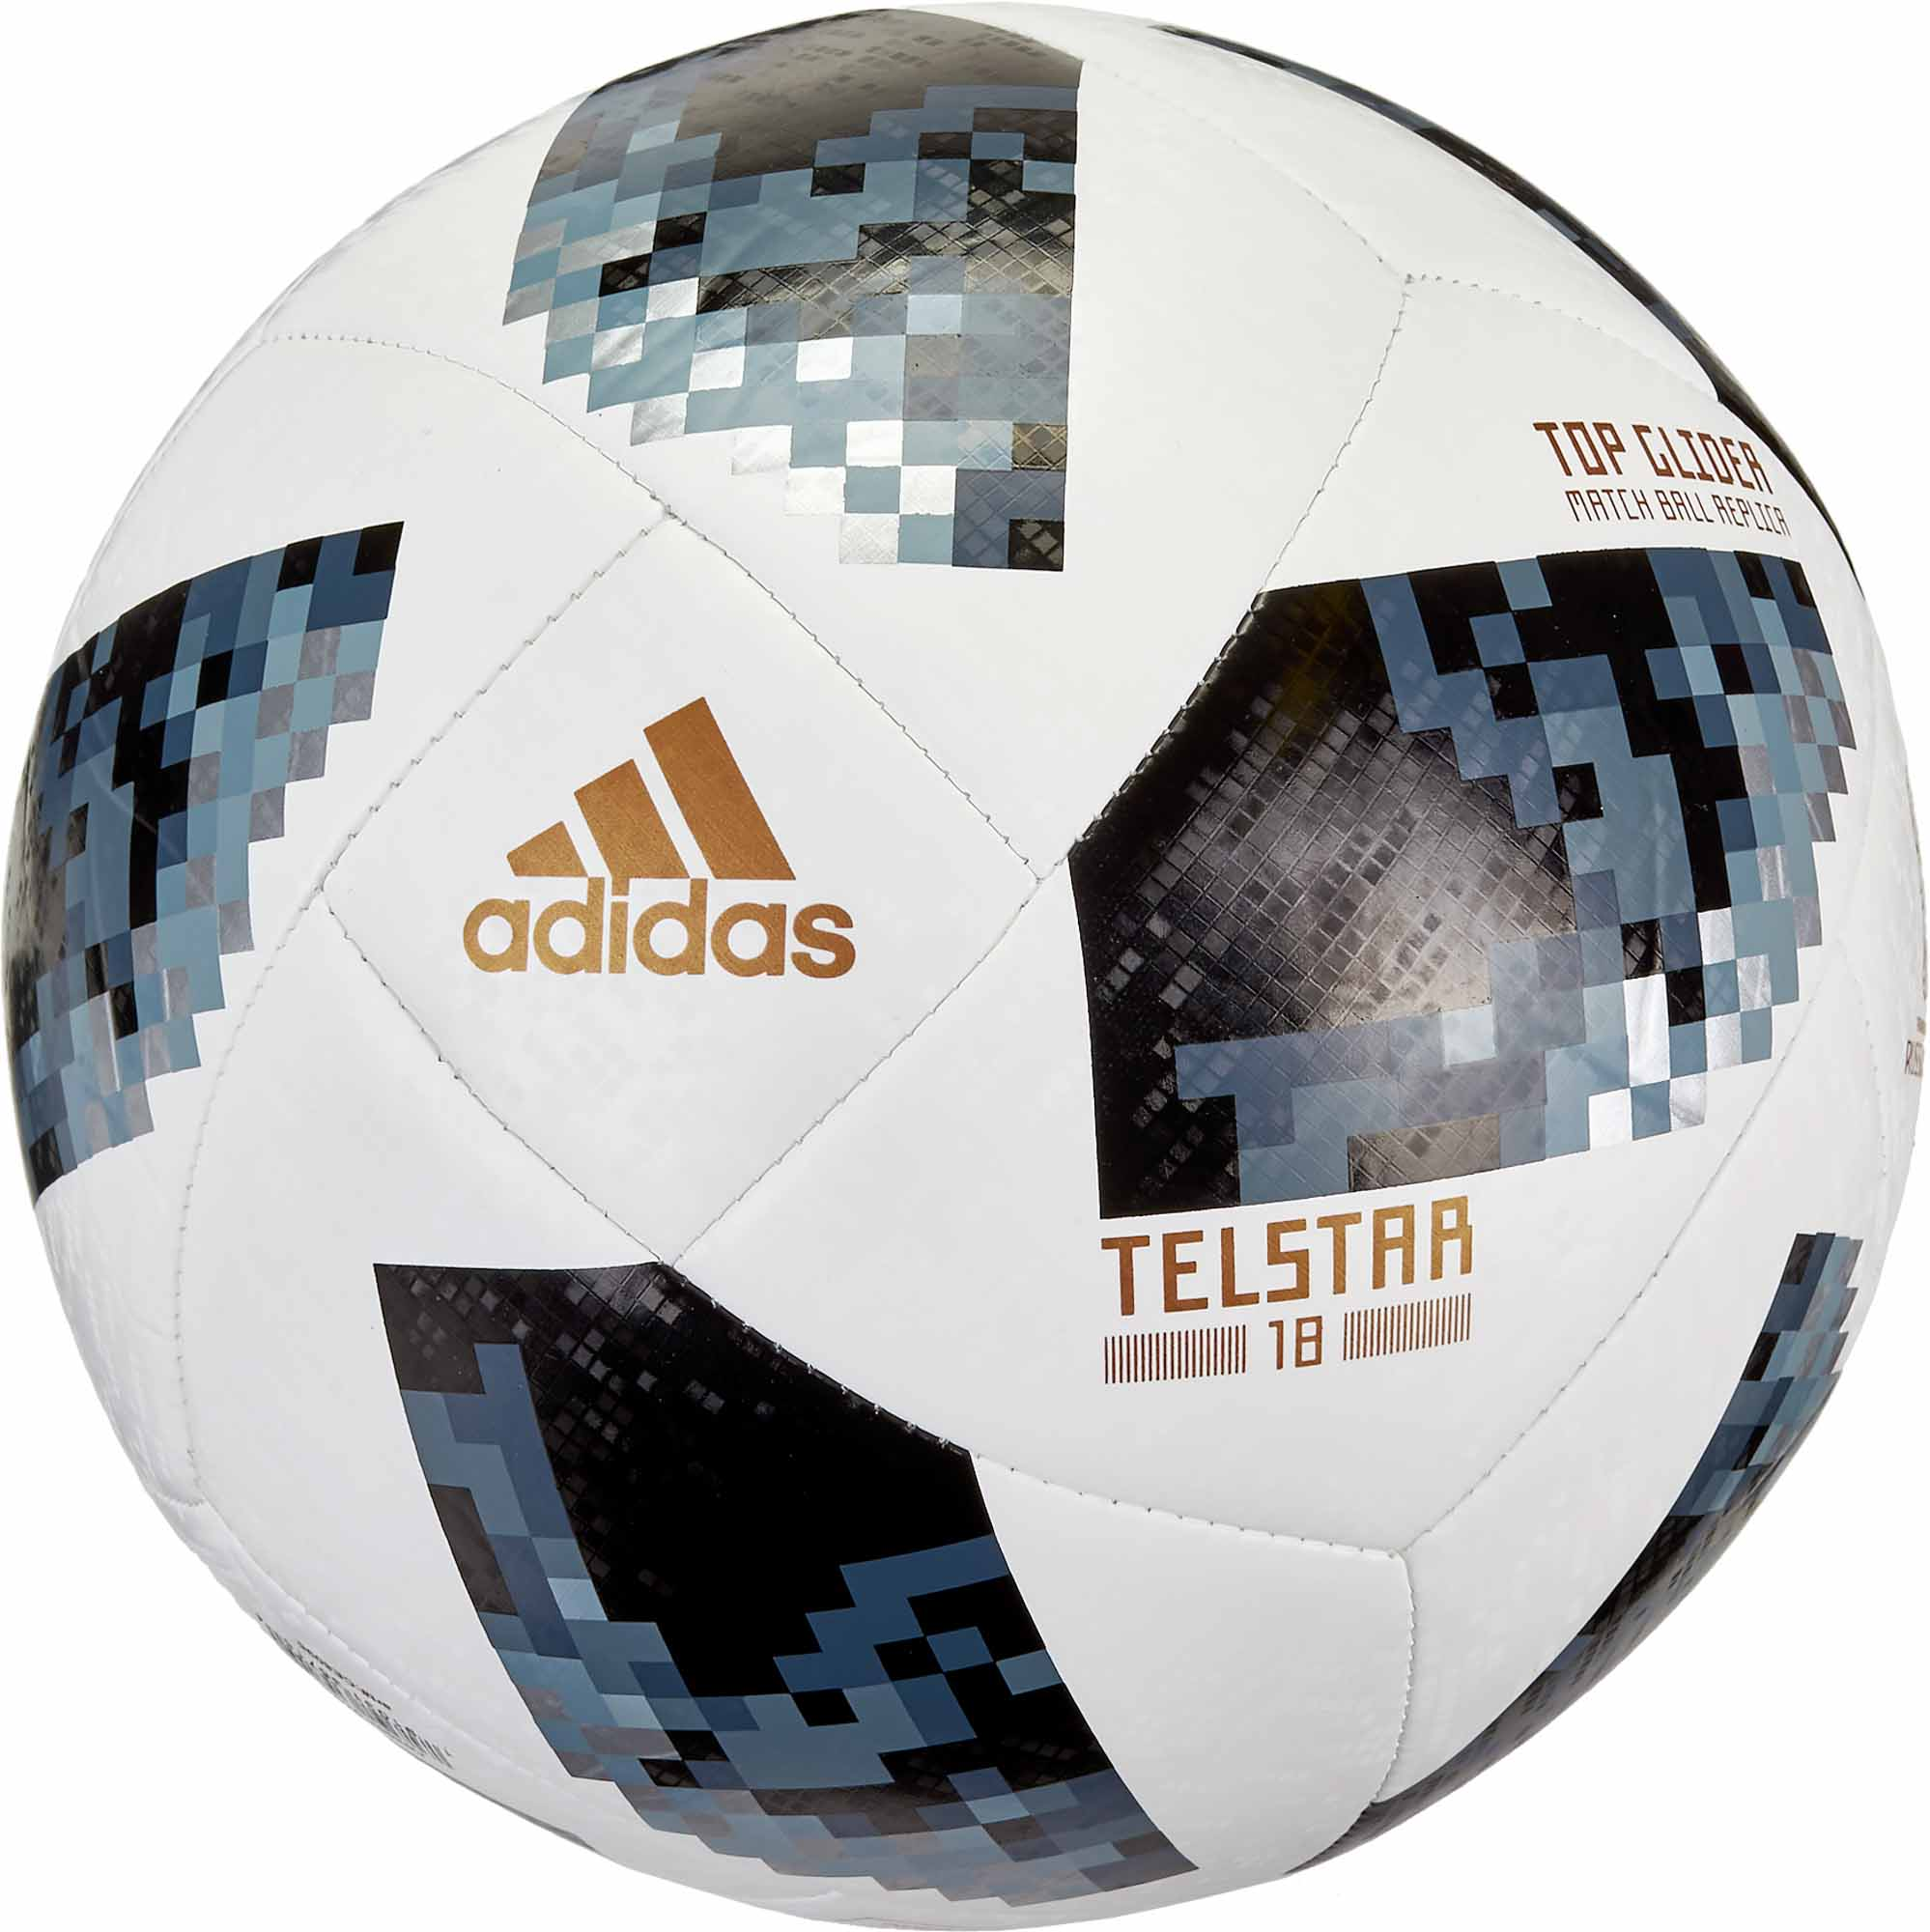 6a19648307a adidas Telstar 18 World Cup Top Glider Soccer Ball – White   Metallic Silver